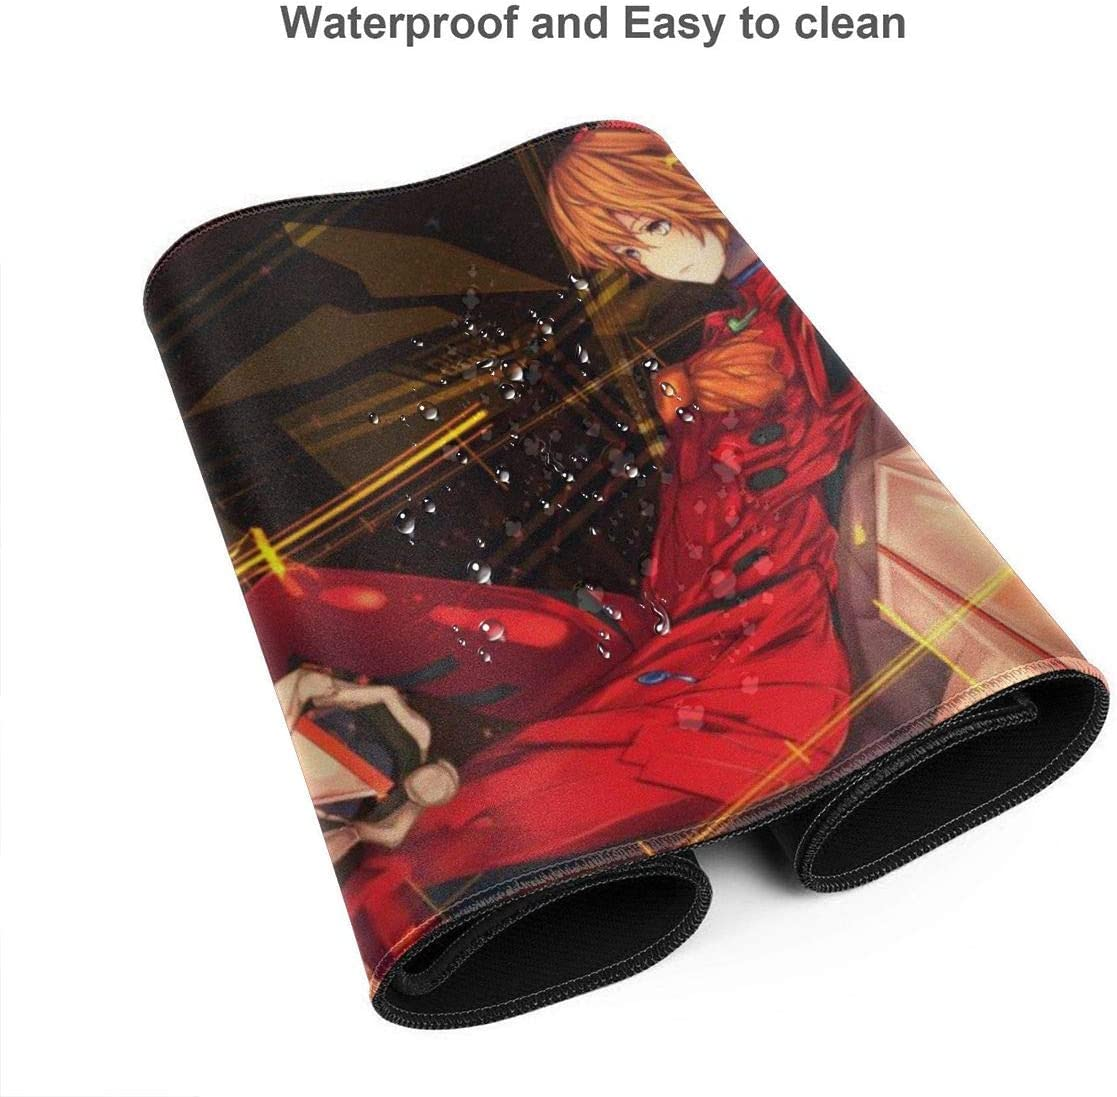 Neon Genesis Evangelion Anime Mouse Pad Extended XXL /& Large Gaming Mat Protector Stickers 35.5 X 15.8 Inch 90x40 cm